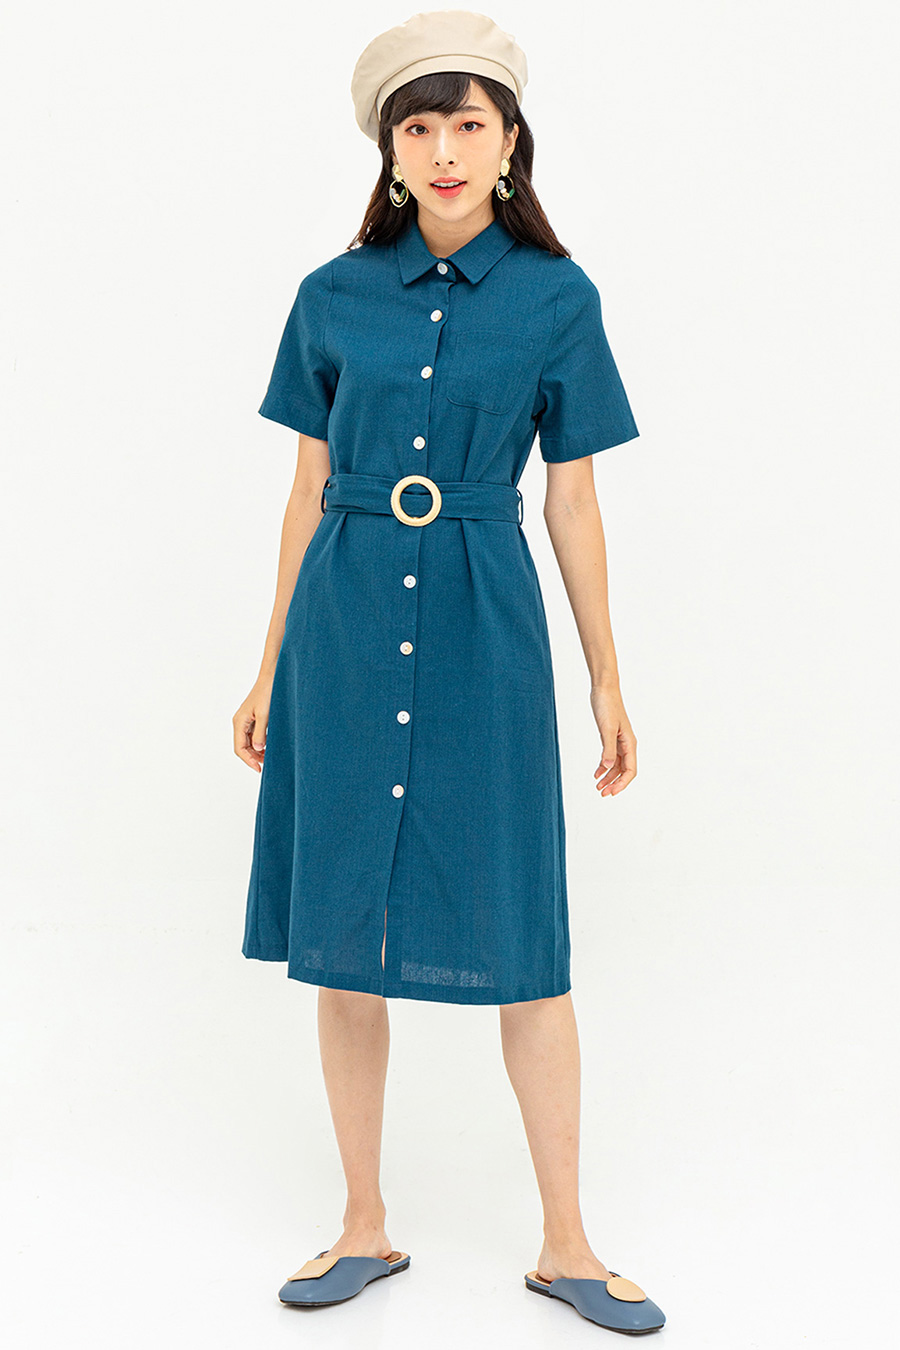 MAIDA DRESS - HAGUE BLUE  [BY MODPARADE]